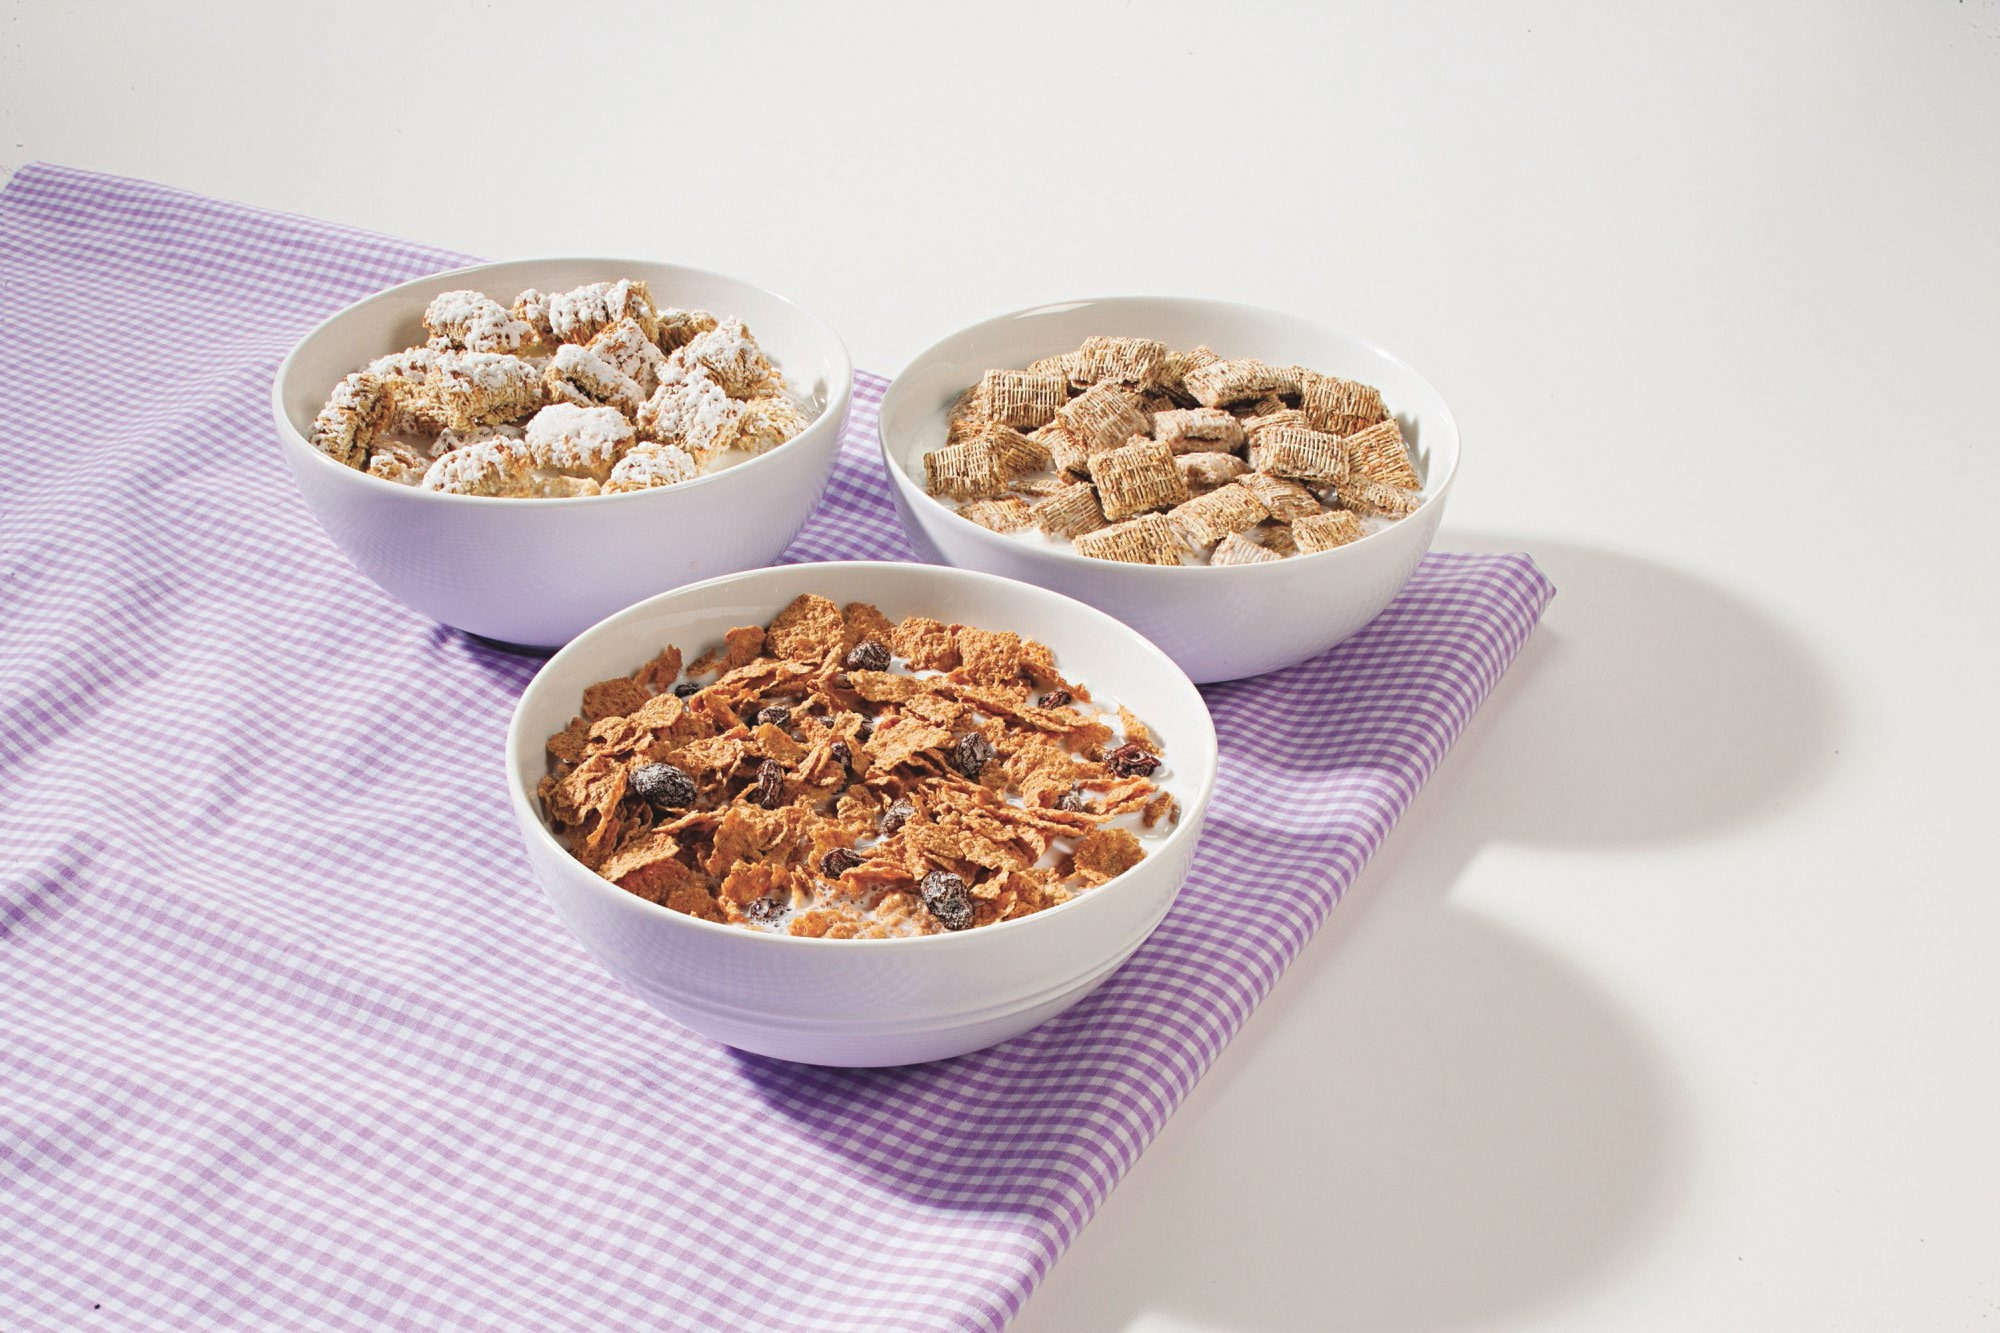 Shredded wheat and raisin bran cereals taste similar, regardless of the brand, according to Consumer Reports.